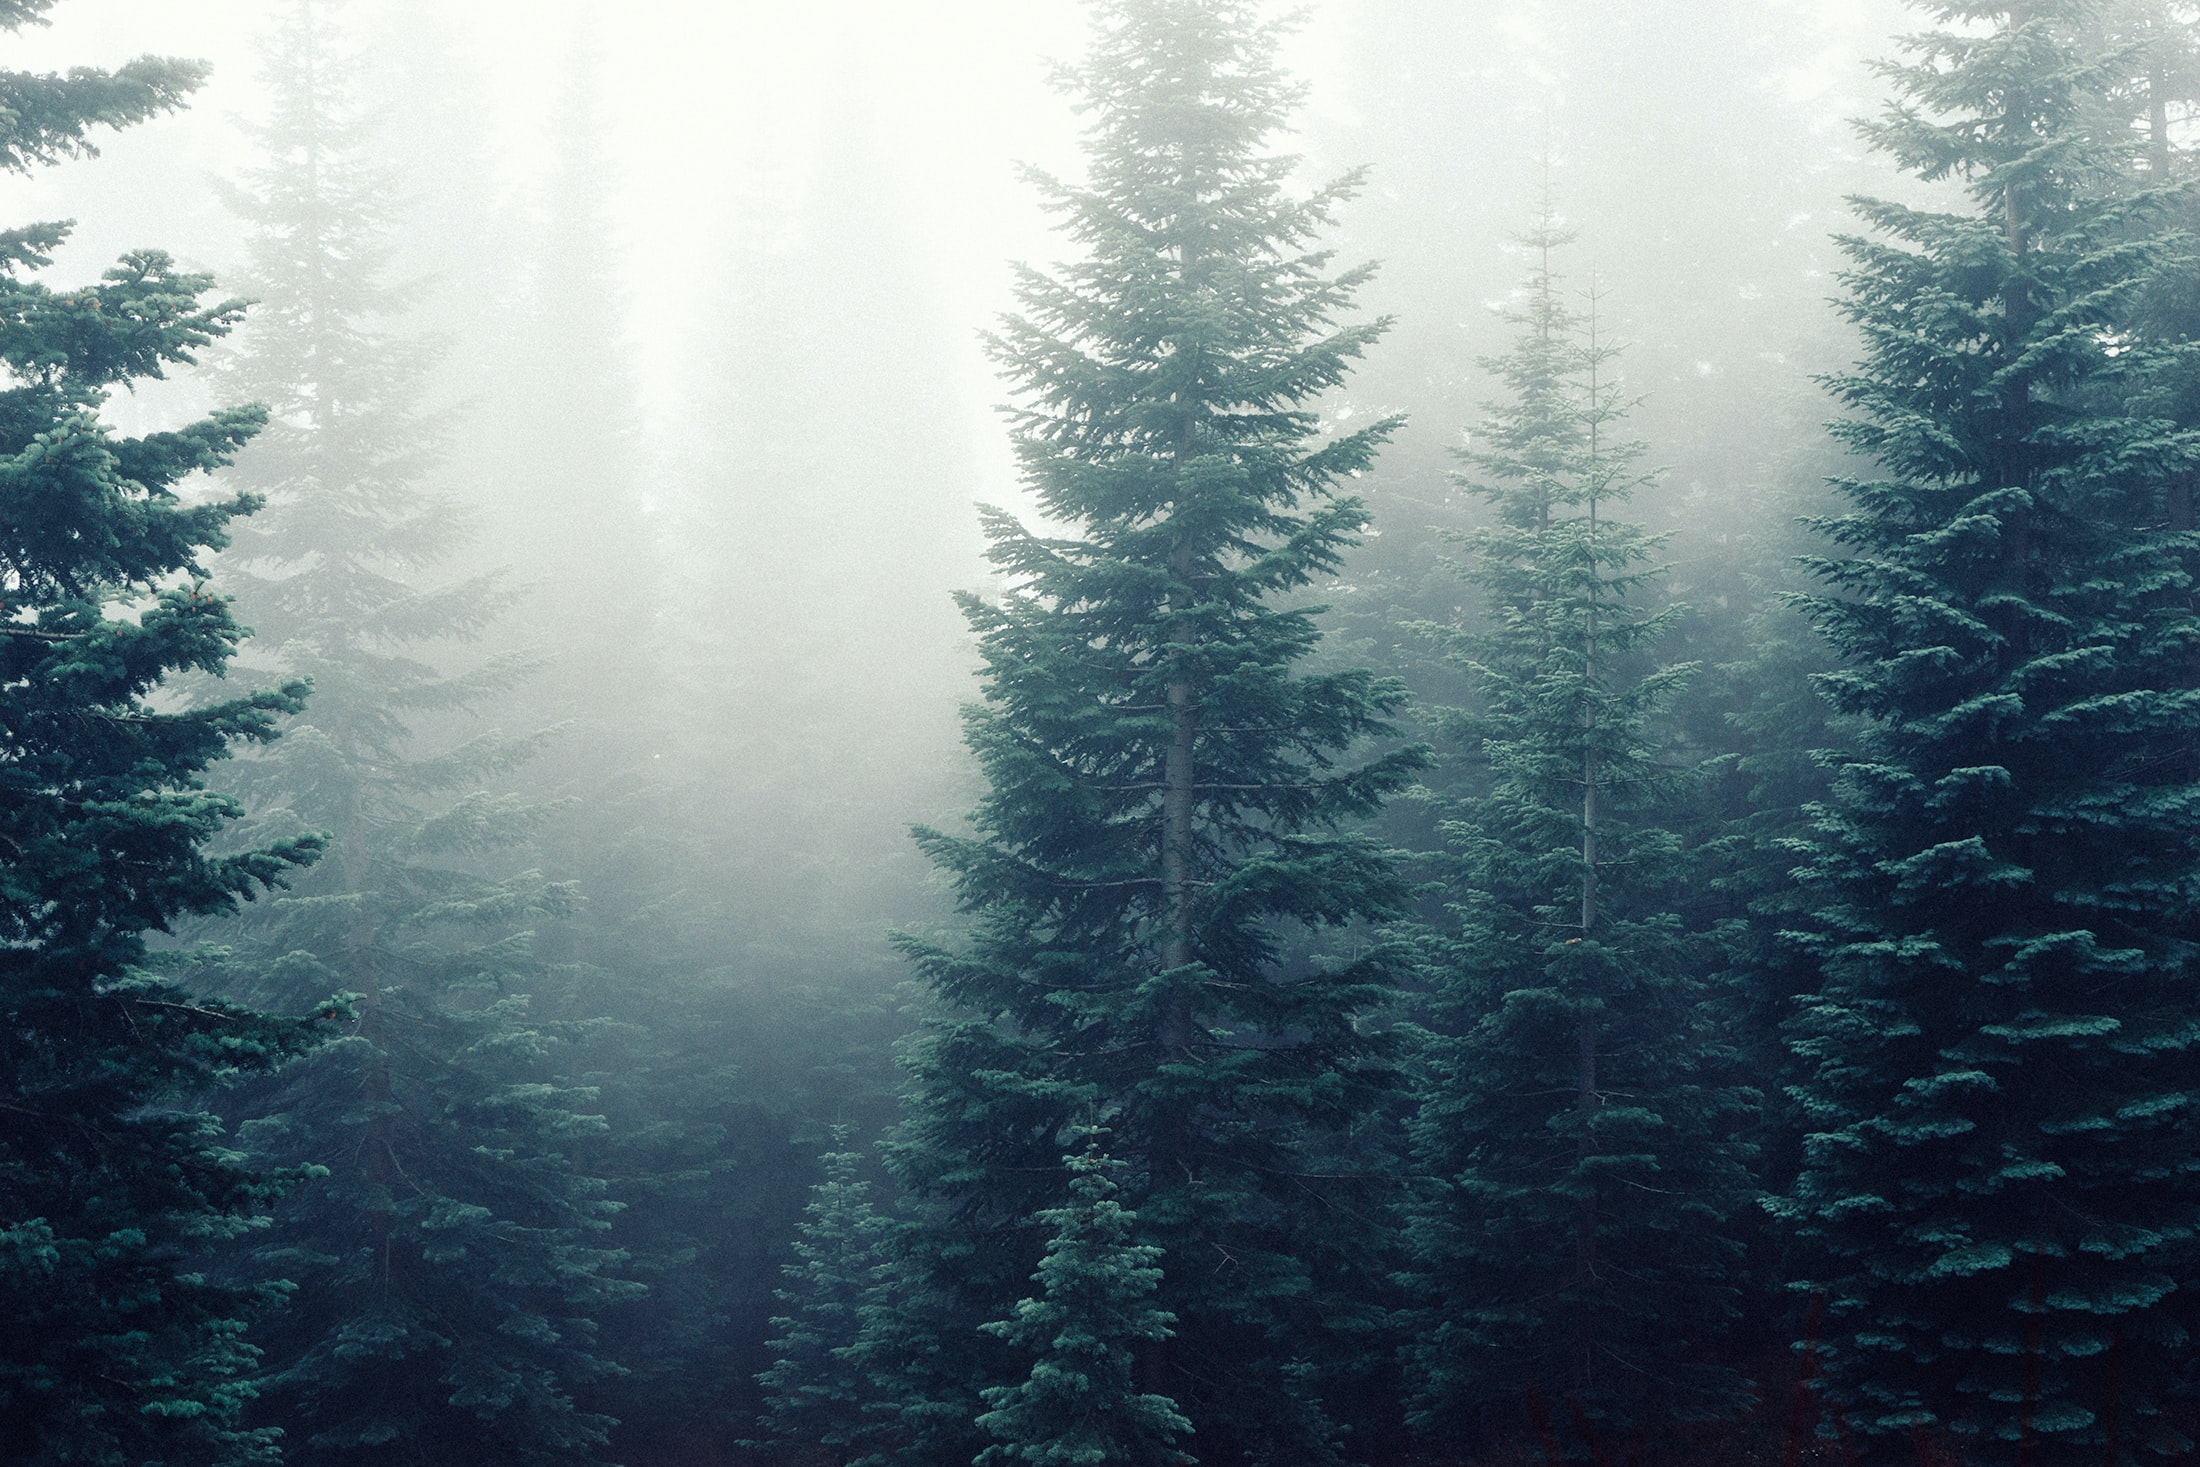 A pale shot of tall conifers in thick fog